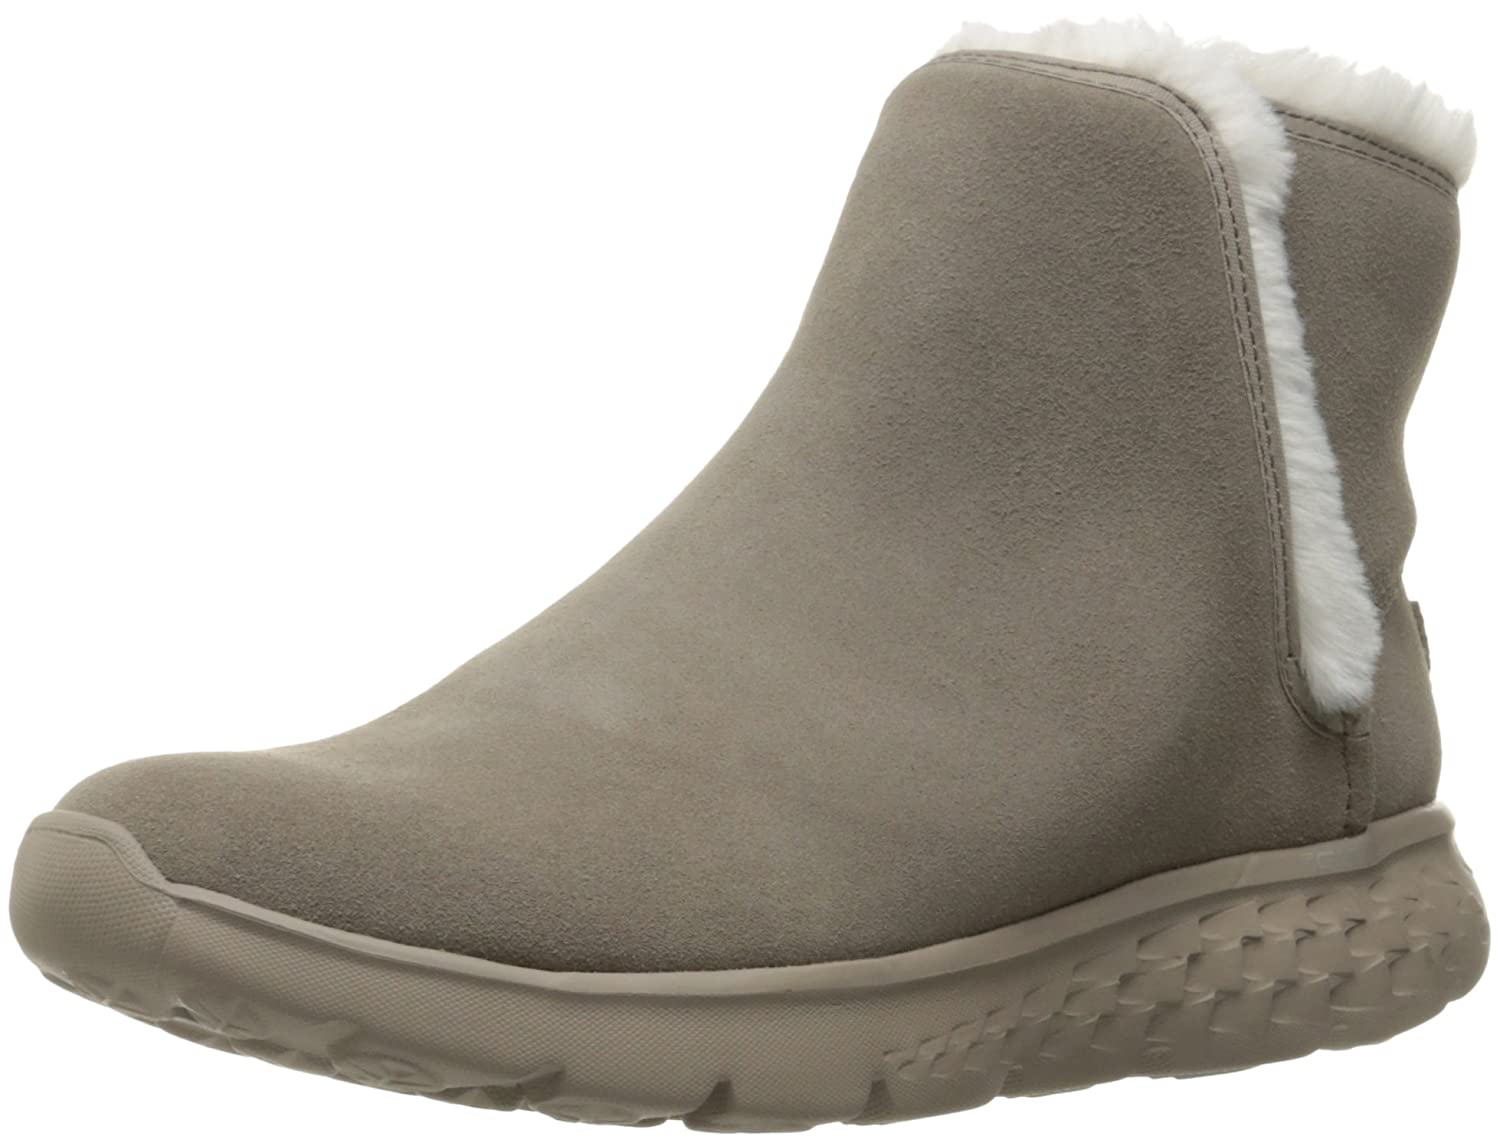 Skechers Performance Women's On The Go 400 Blaze Winter Boot B01LYHE82V 6.5 B(M) US|Taupe